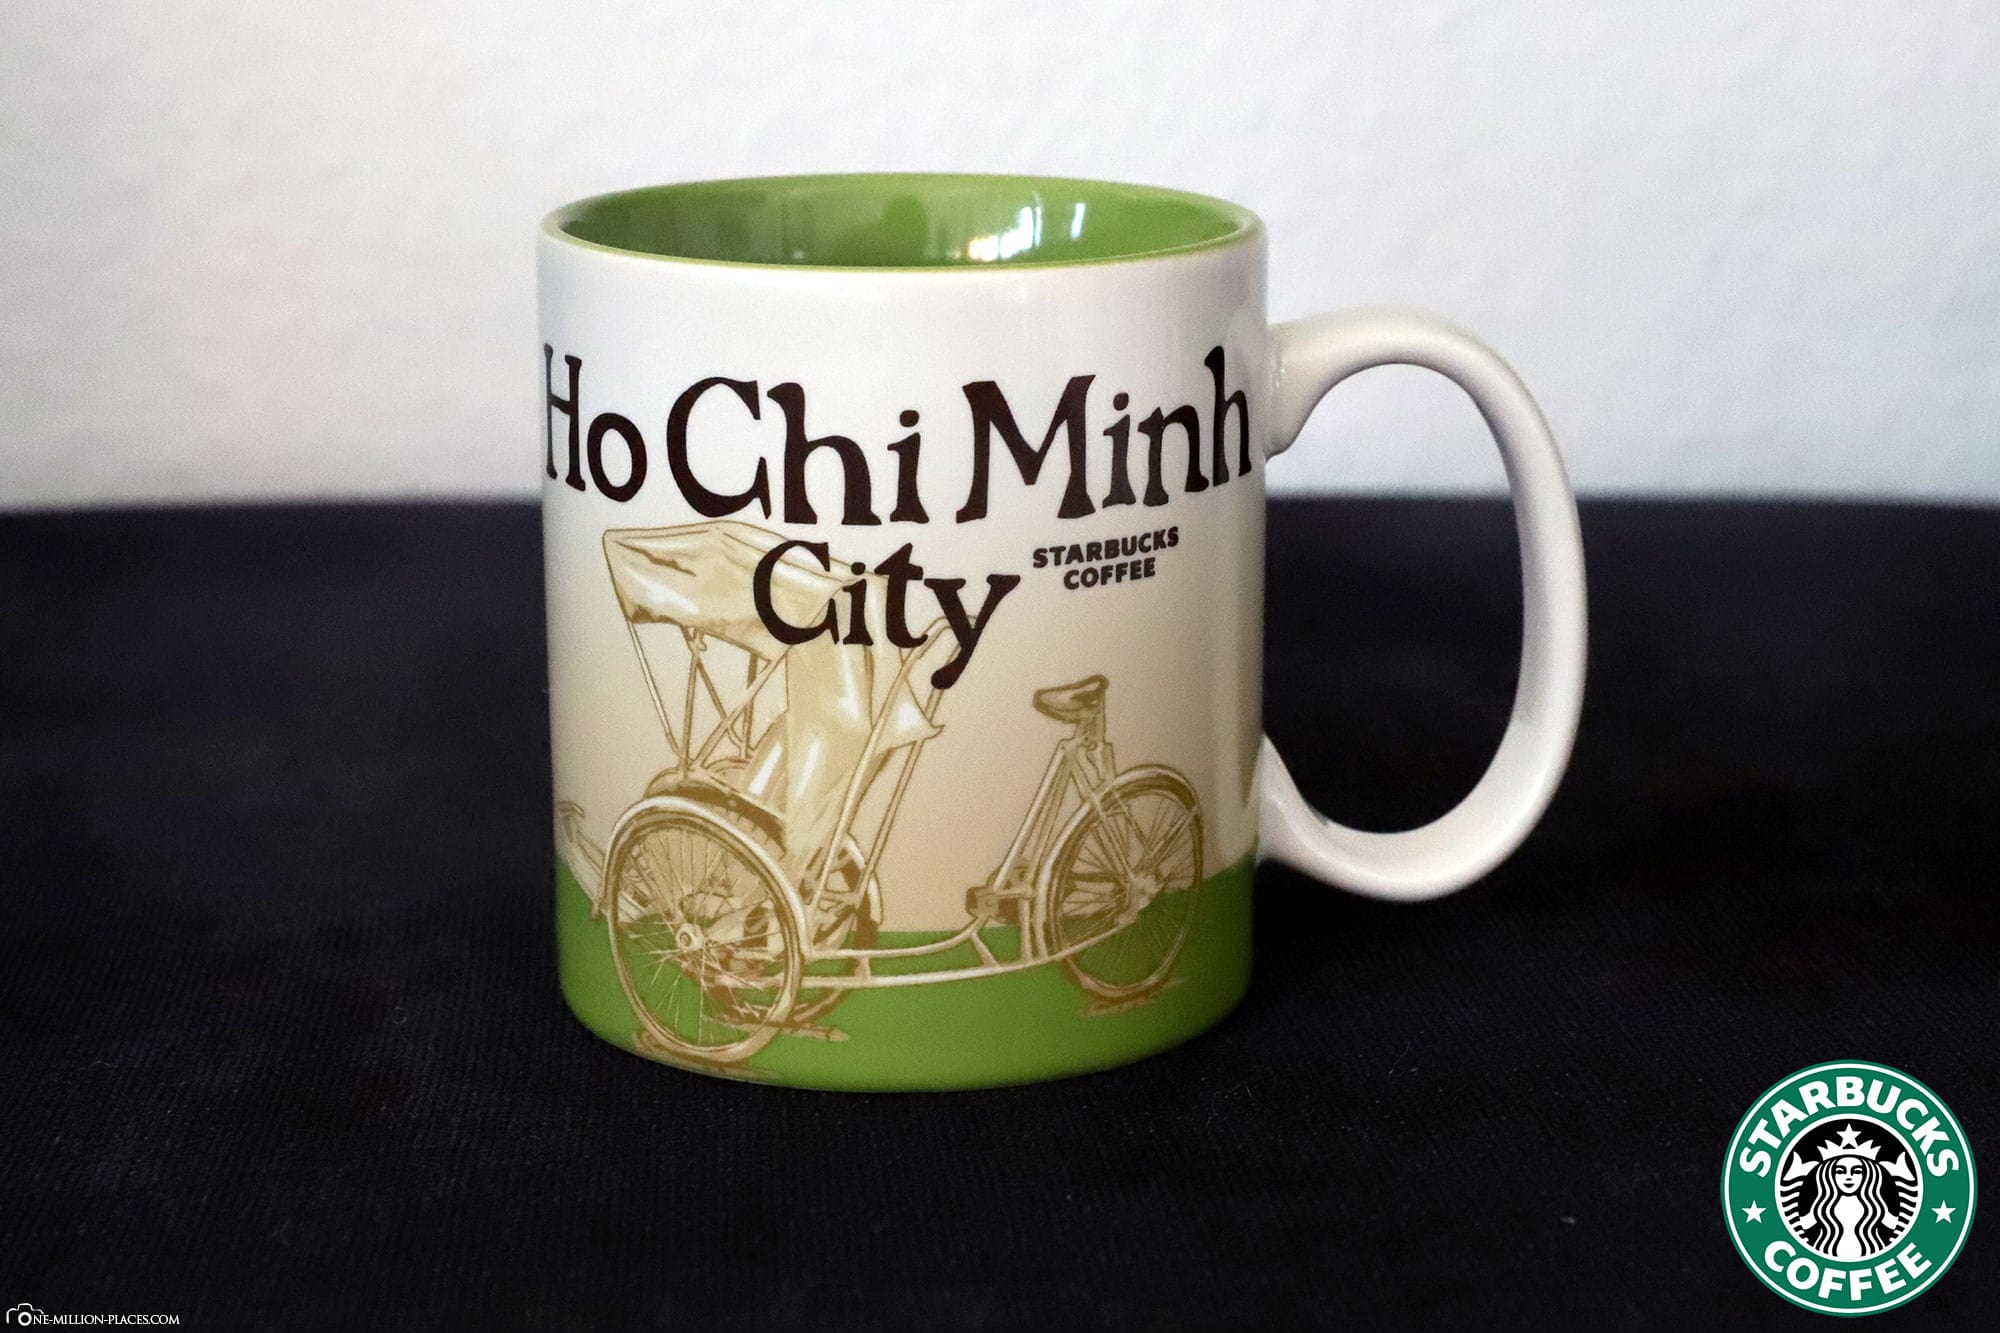 Ho Chi Minh City, Starbucks Tasse, Global Icon Serie, City Mugs, Sammlung, Vietnam, Reisebericht